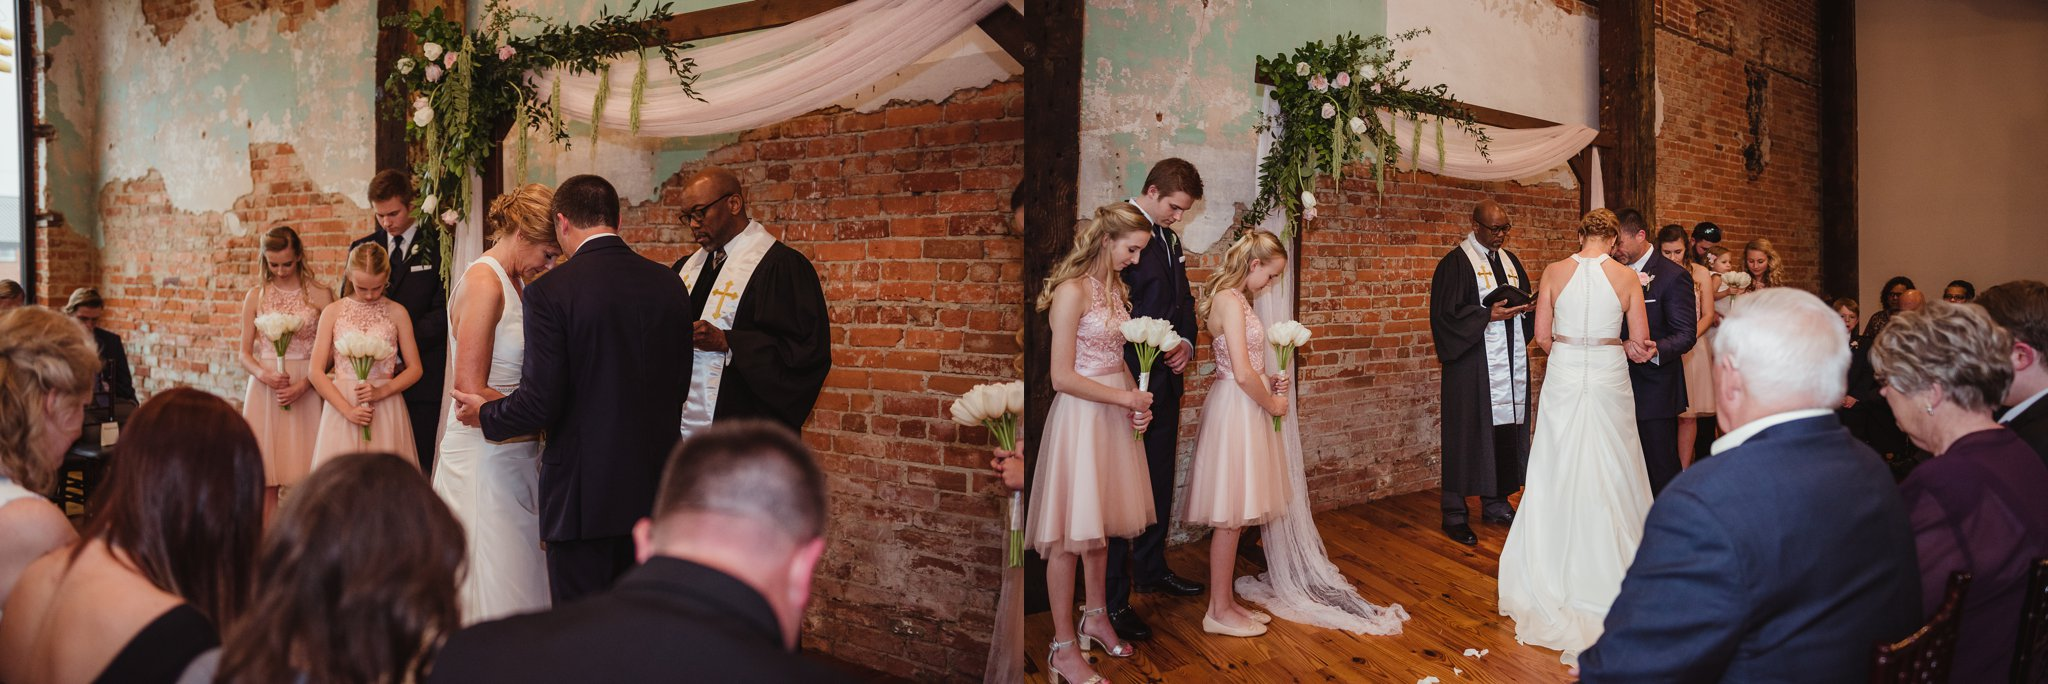 The bride and groom, along with their guests, take a moment to pray at their wedding ceremony in Youngsville, NC, images taken by Rose Trail Images.